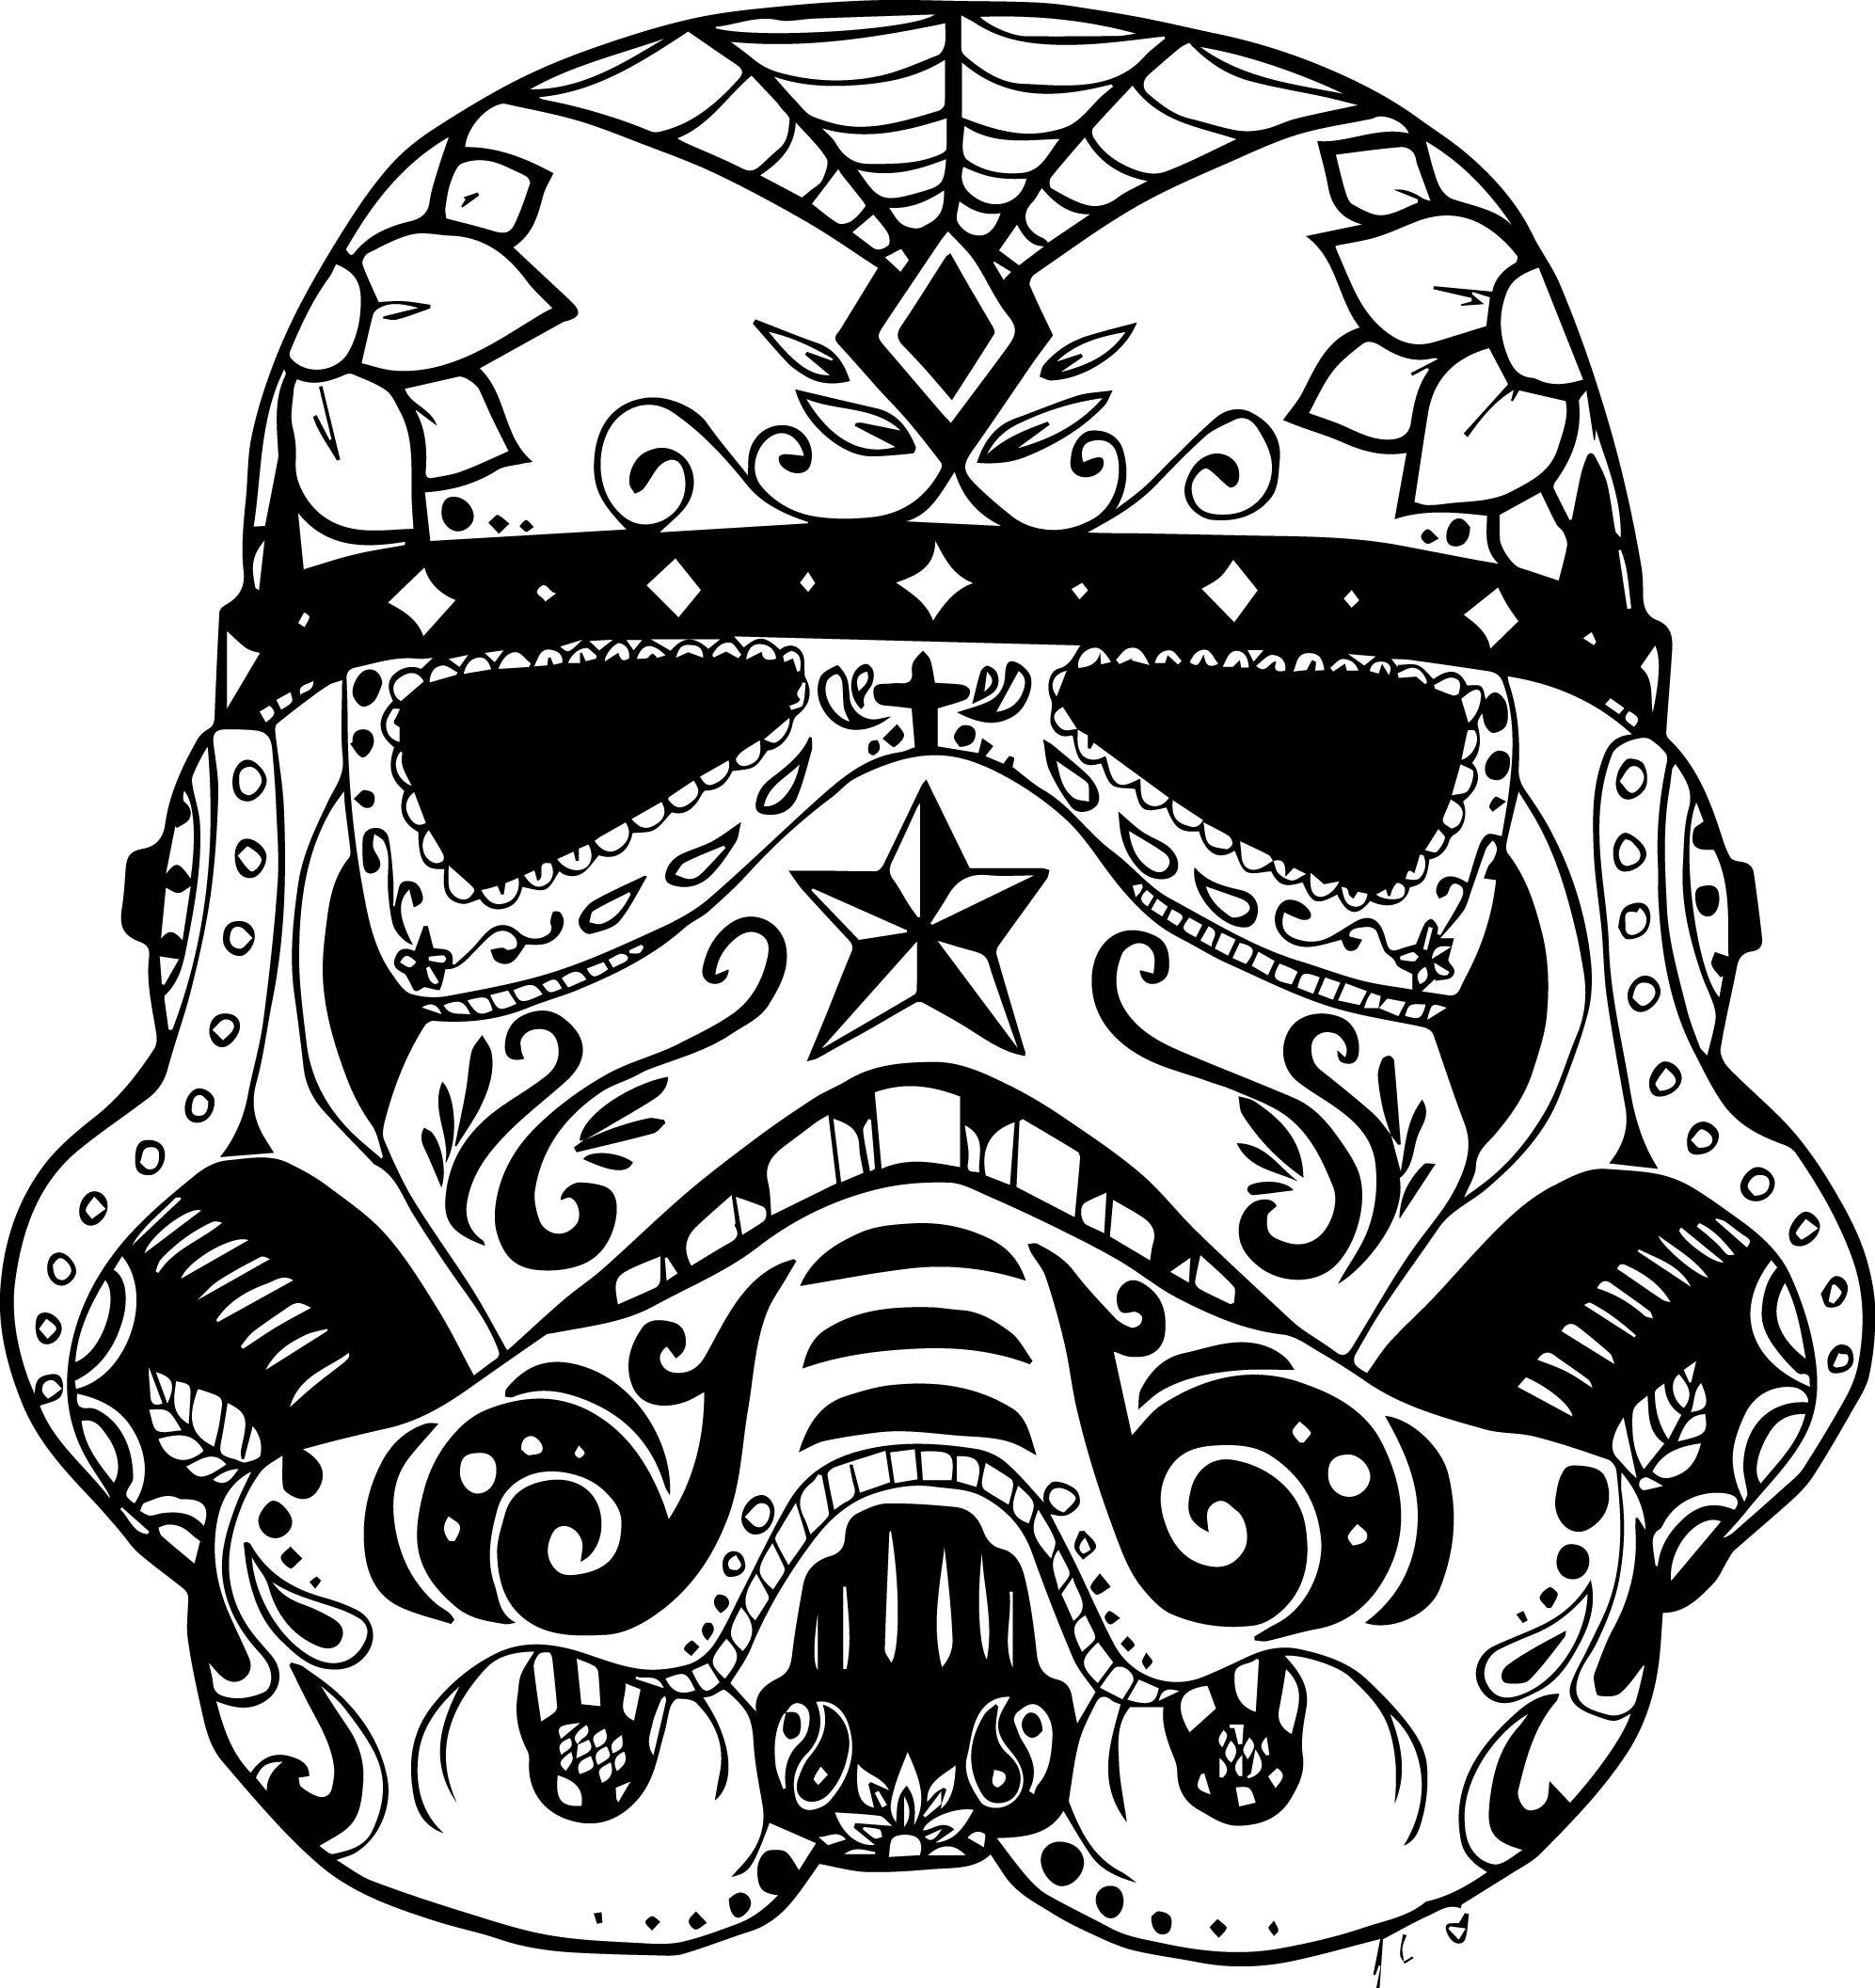 httpwwwmcoloringcomindexphp20151129sugar skull animal